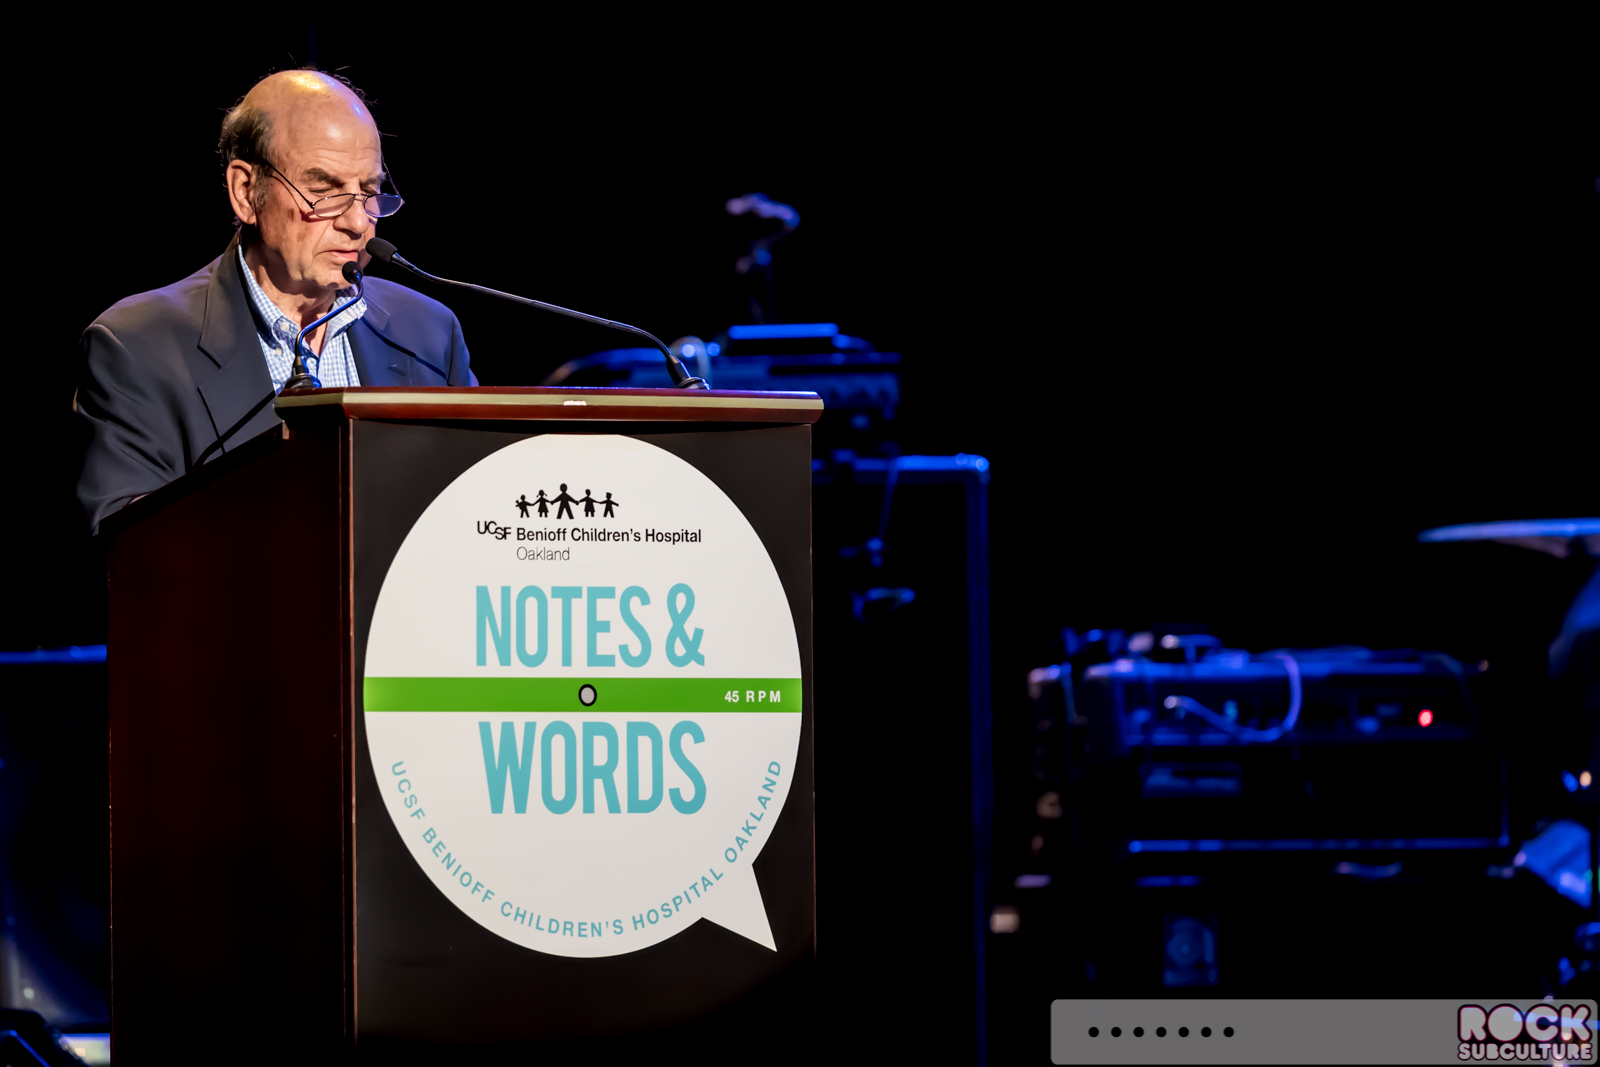 Notes & Words 2017: Benefit For UCSF Benioff Children's